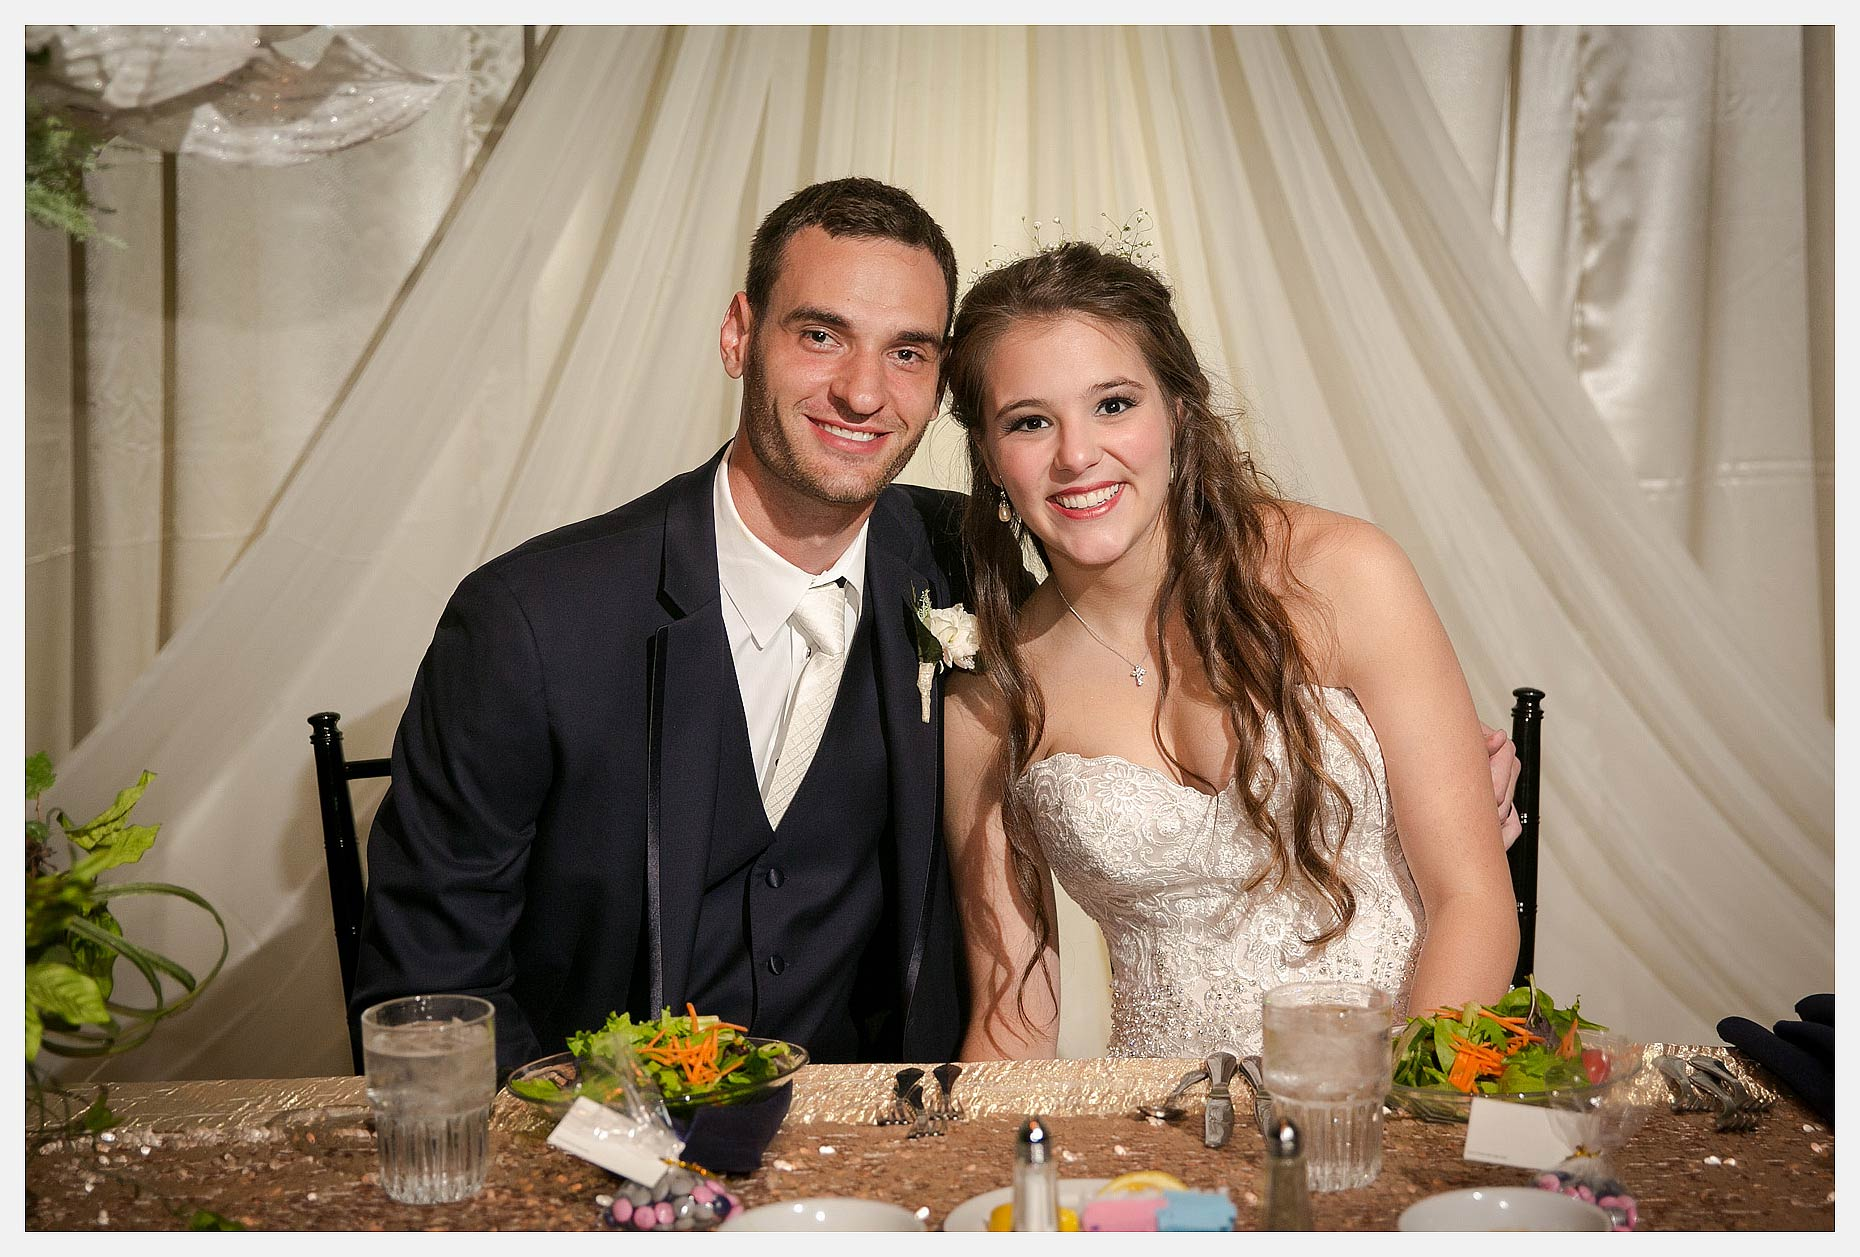 Madison-Carver-Wedding-by-Stephen-Masker-Photography-0107